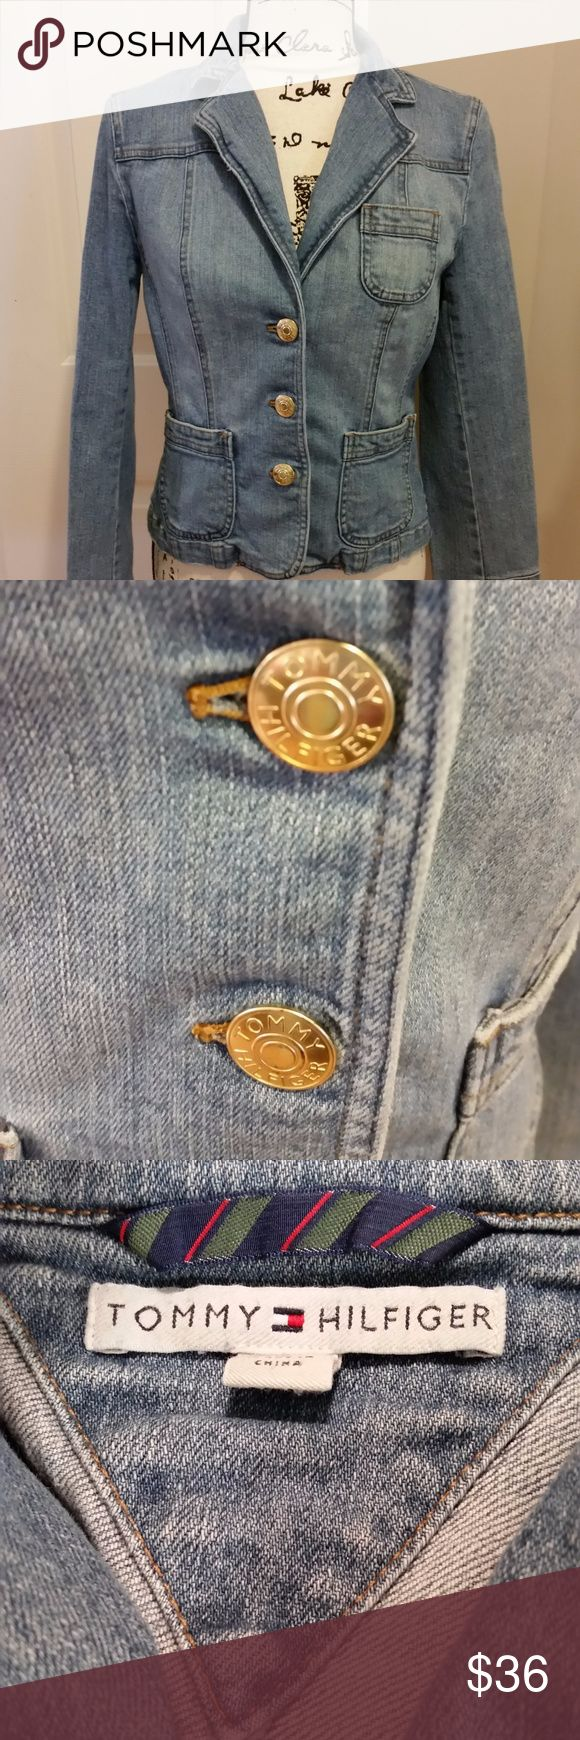 TOMMY HILFIGER Denim Jackekt Three shiny logo buttons adorn the closure on this slightly weathered denim jacket with two small front patch pockets and demure breast pocket. Easy to wear and the perfect complement for your favorite jeans or skirts. EUC. Now flaws. Tommy Hilfiger Jackets & Coats Jean Jackets